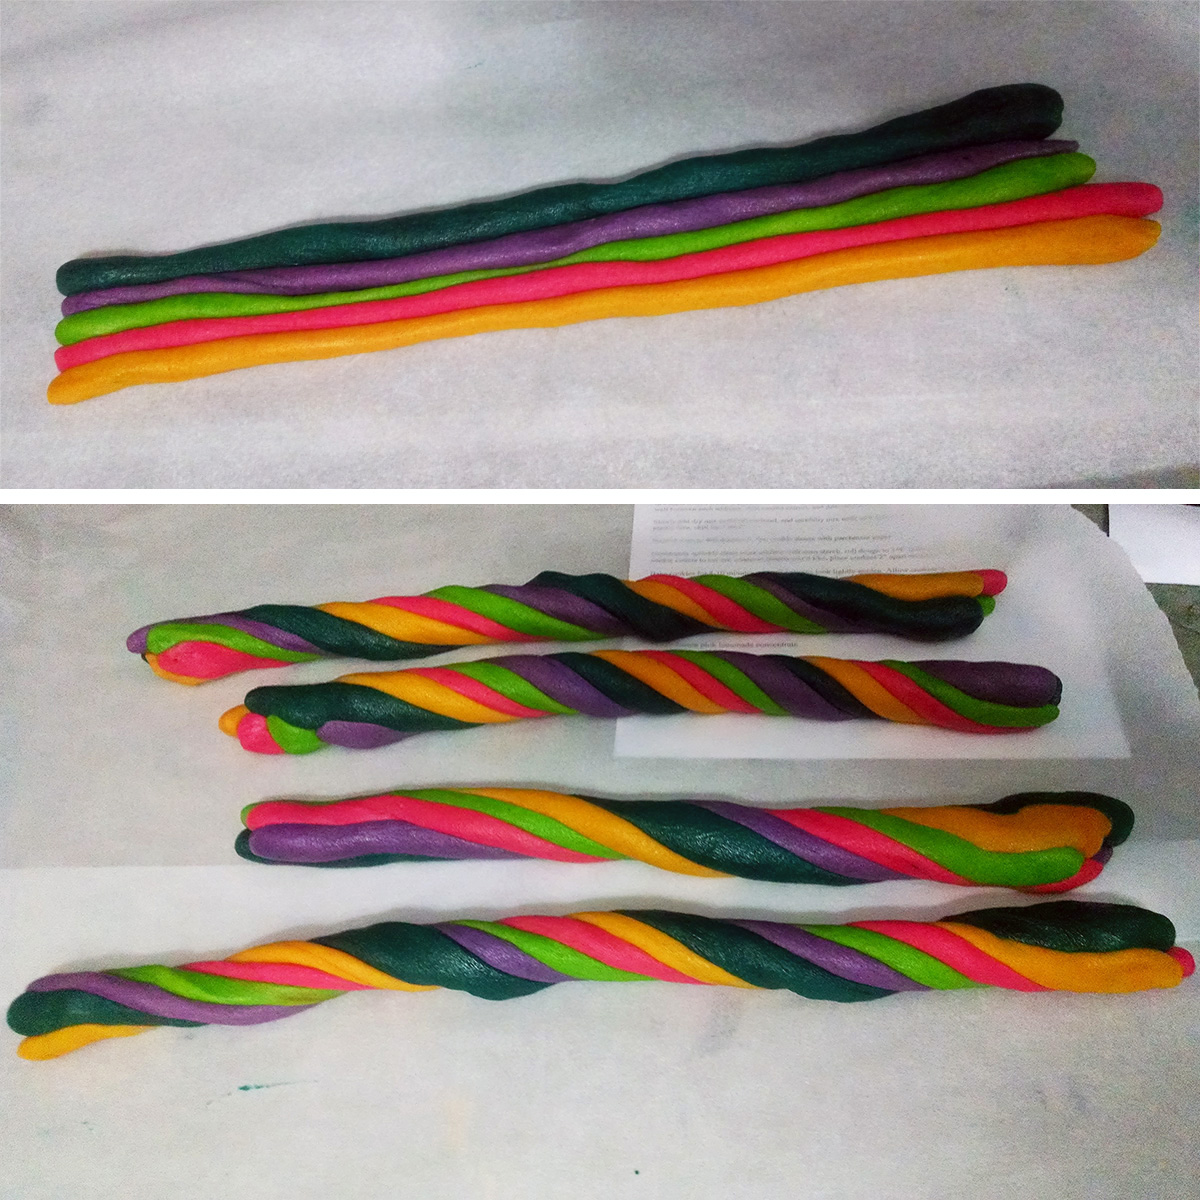 Long ropes of pink, yellow, green, teal, and purple cookie dough are lined up and twisted around each other.